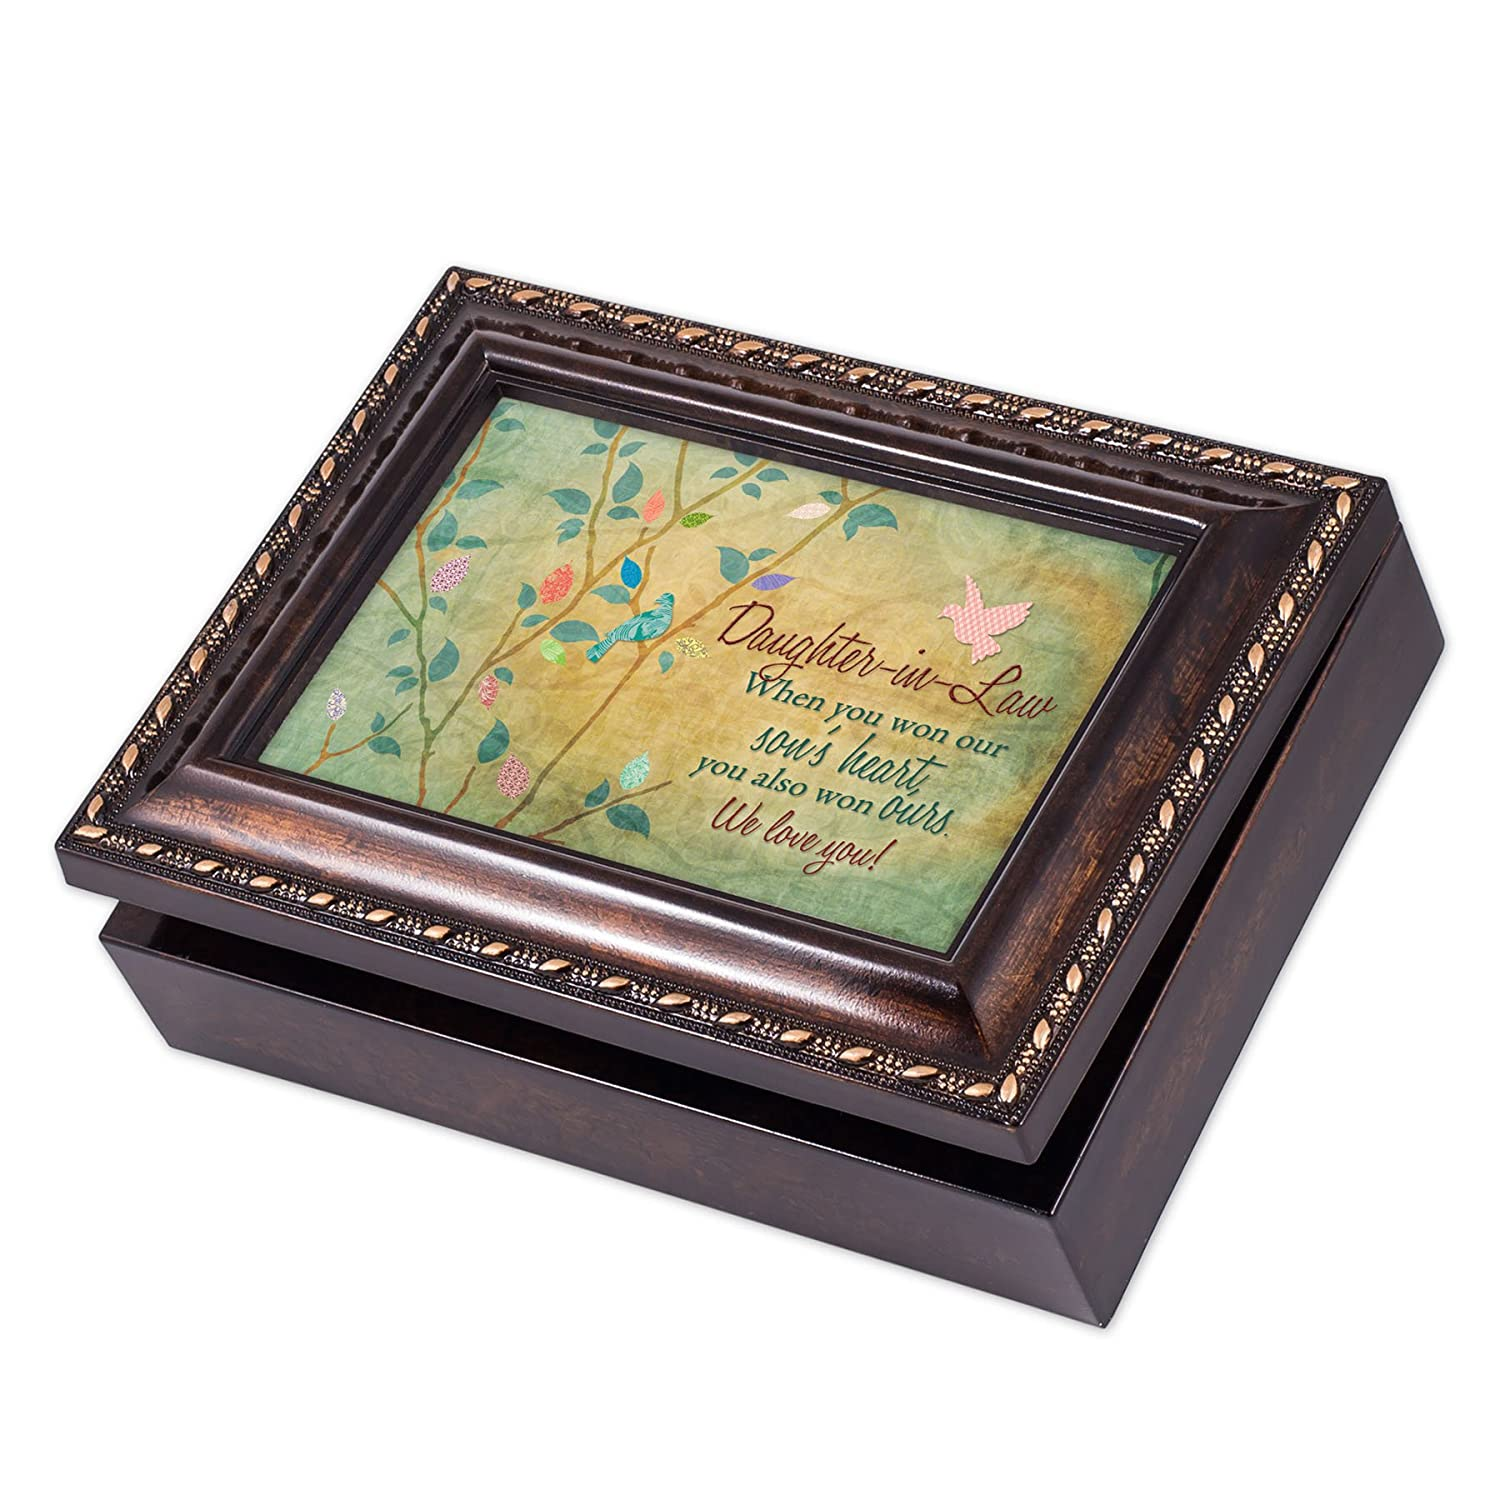 Plays Tune Pachelbels Canon in D Cottage Garden Daughter-in-Law We Love You Rich Burl Wood Finish Jewelry Music Box